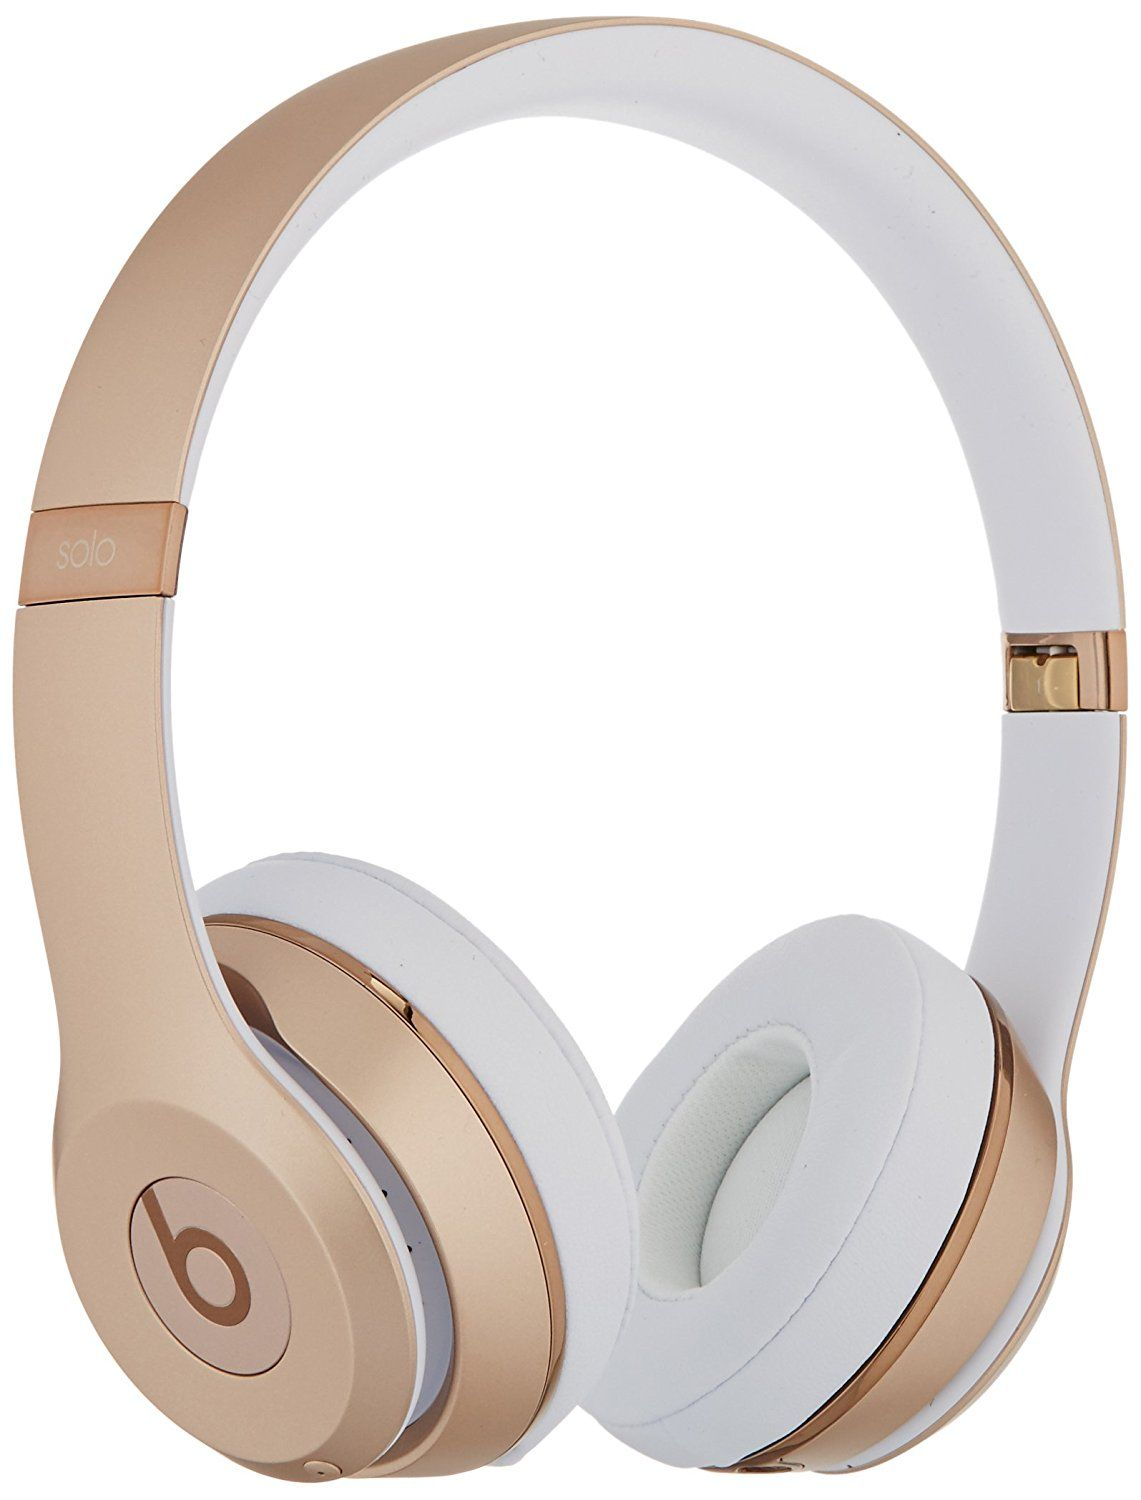 Amazon Com Beats Solo3 Wireless On Ear Headphones Gold Electronics Wireless Headphones Headphones Bluetooth Headphones